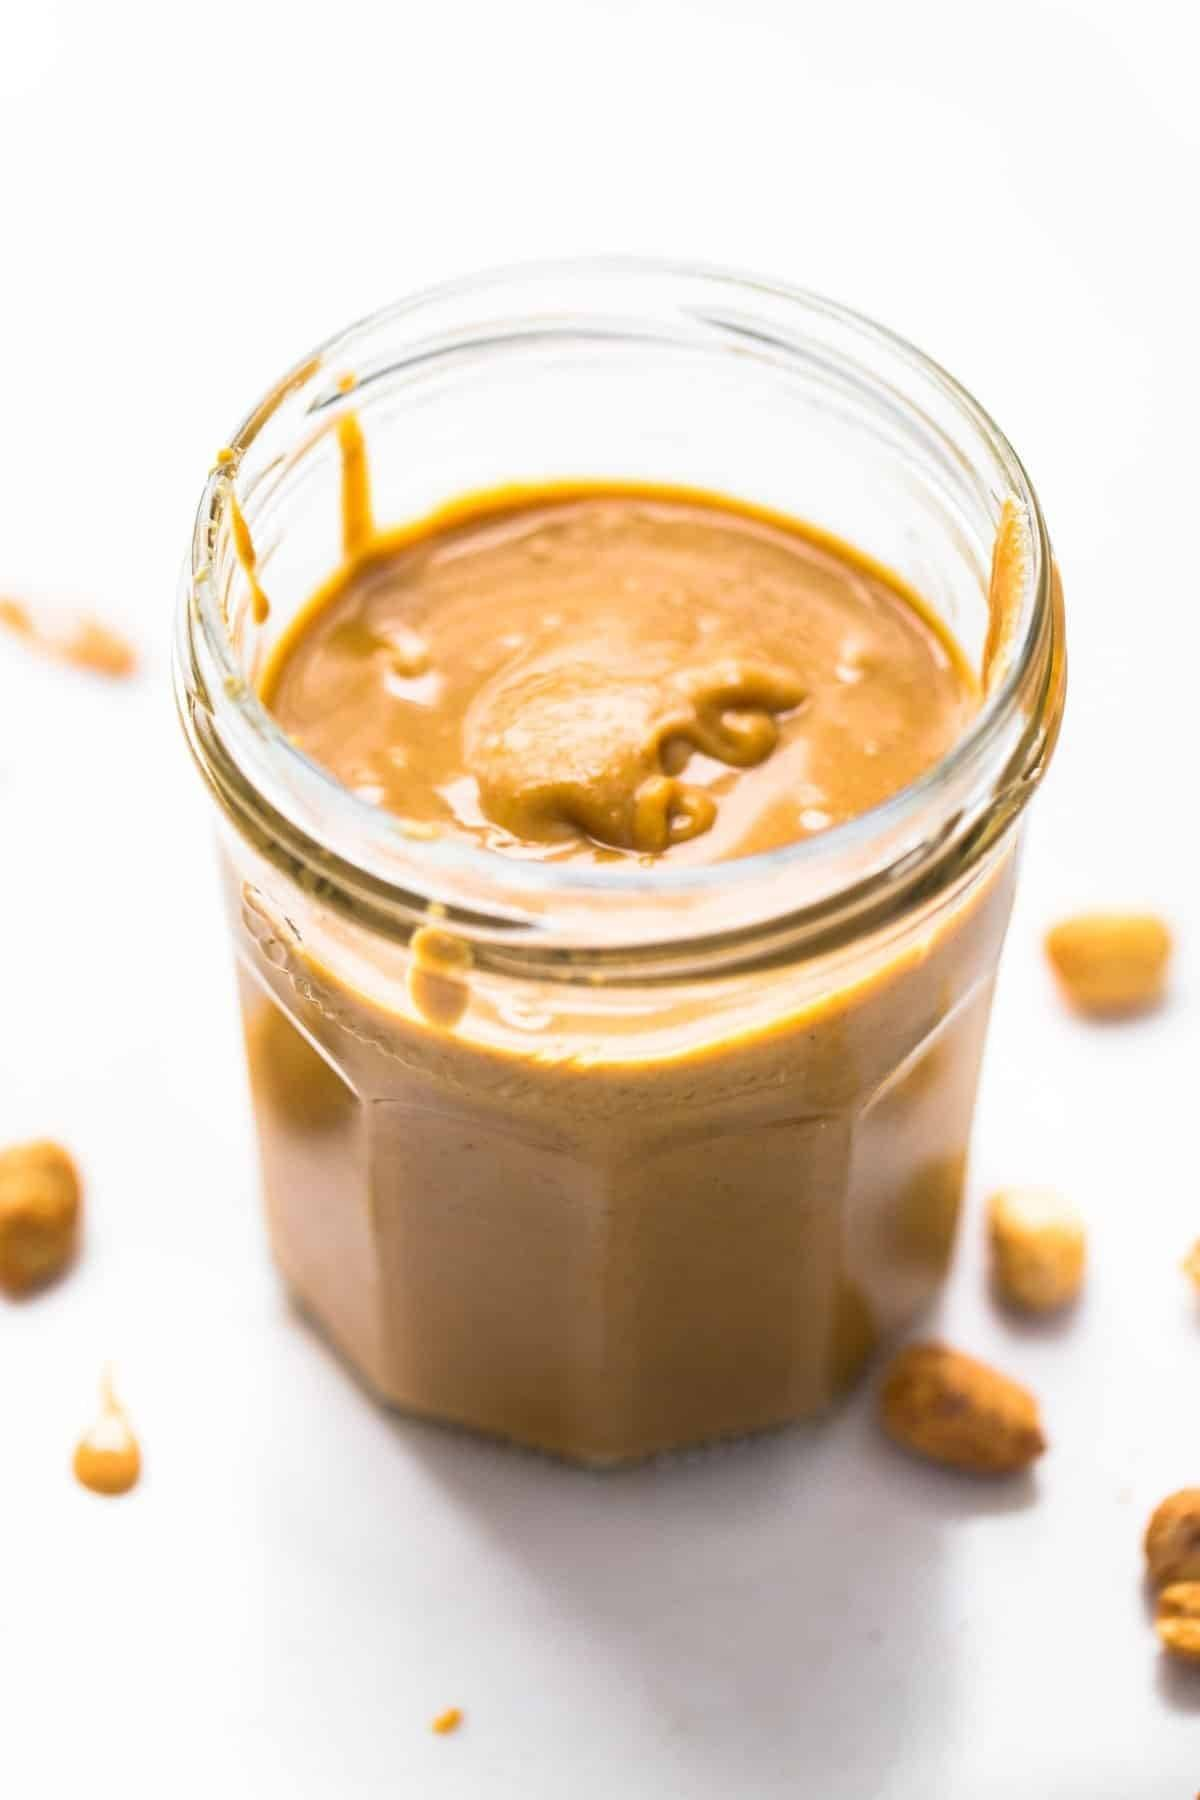 Food Processor To Make Peanut Butter